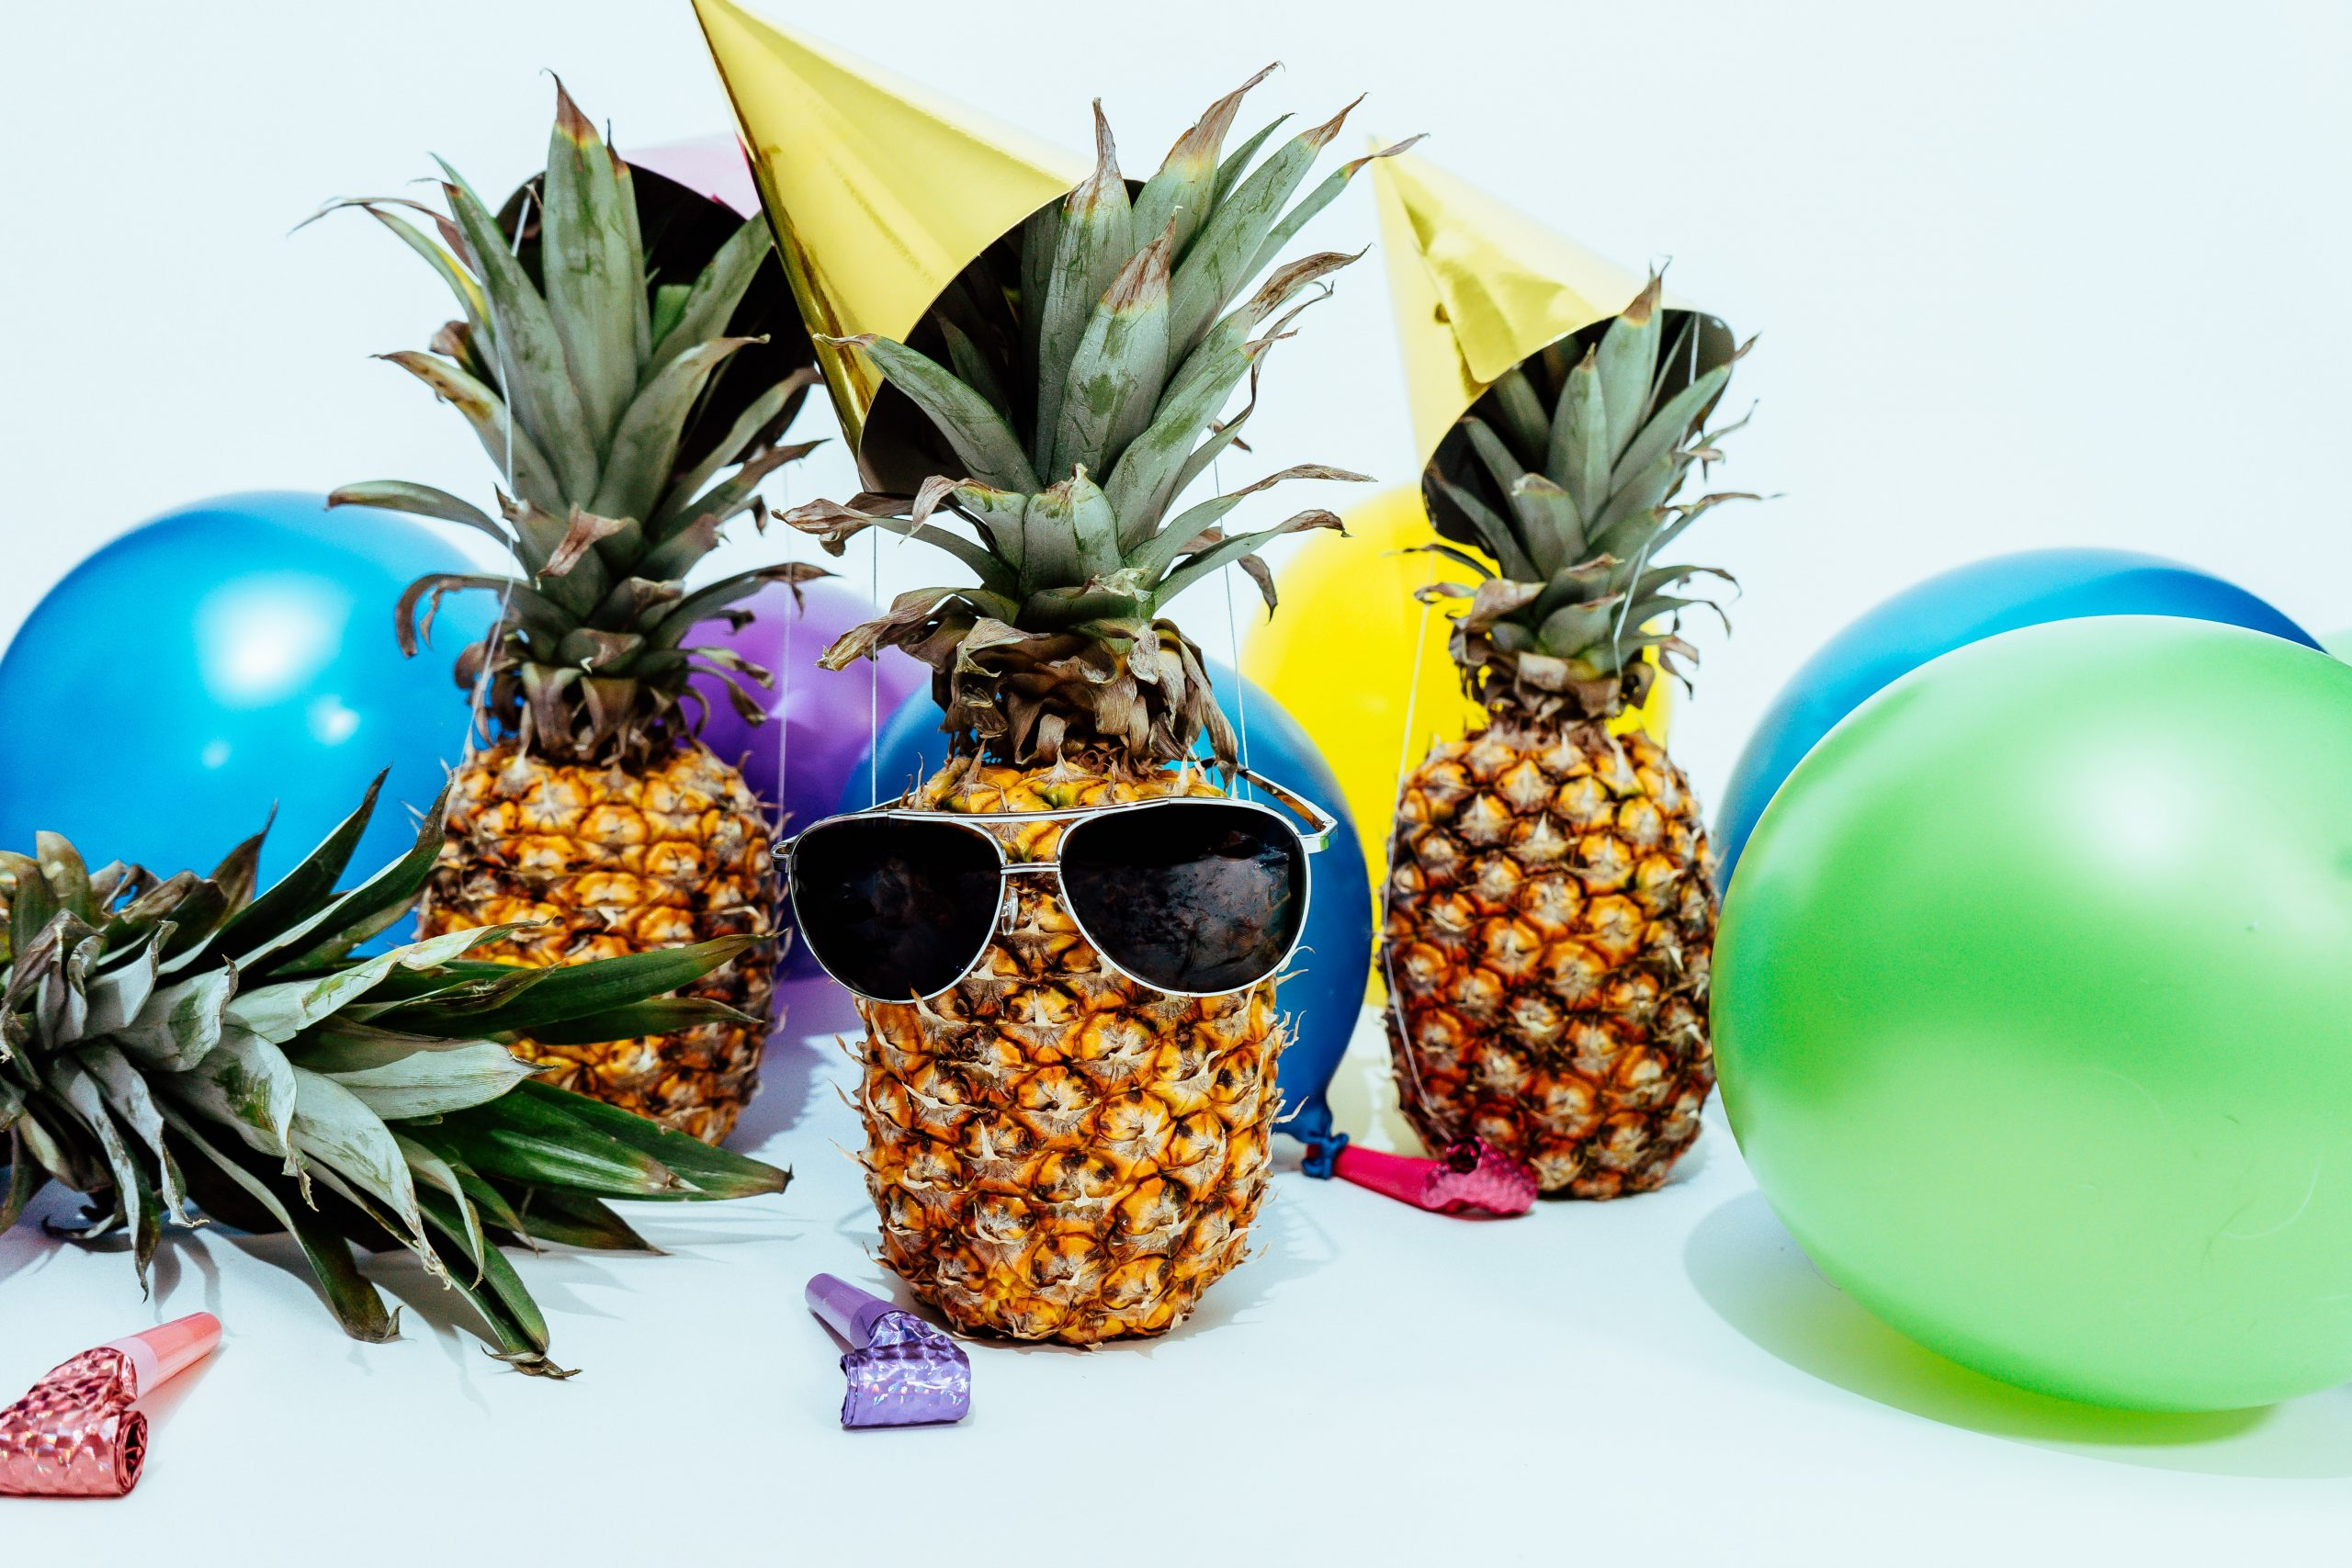 pineapple-supply-co-qWlkCwBnwOE-unsplash-1-scaled.jpg